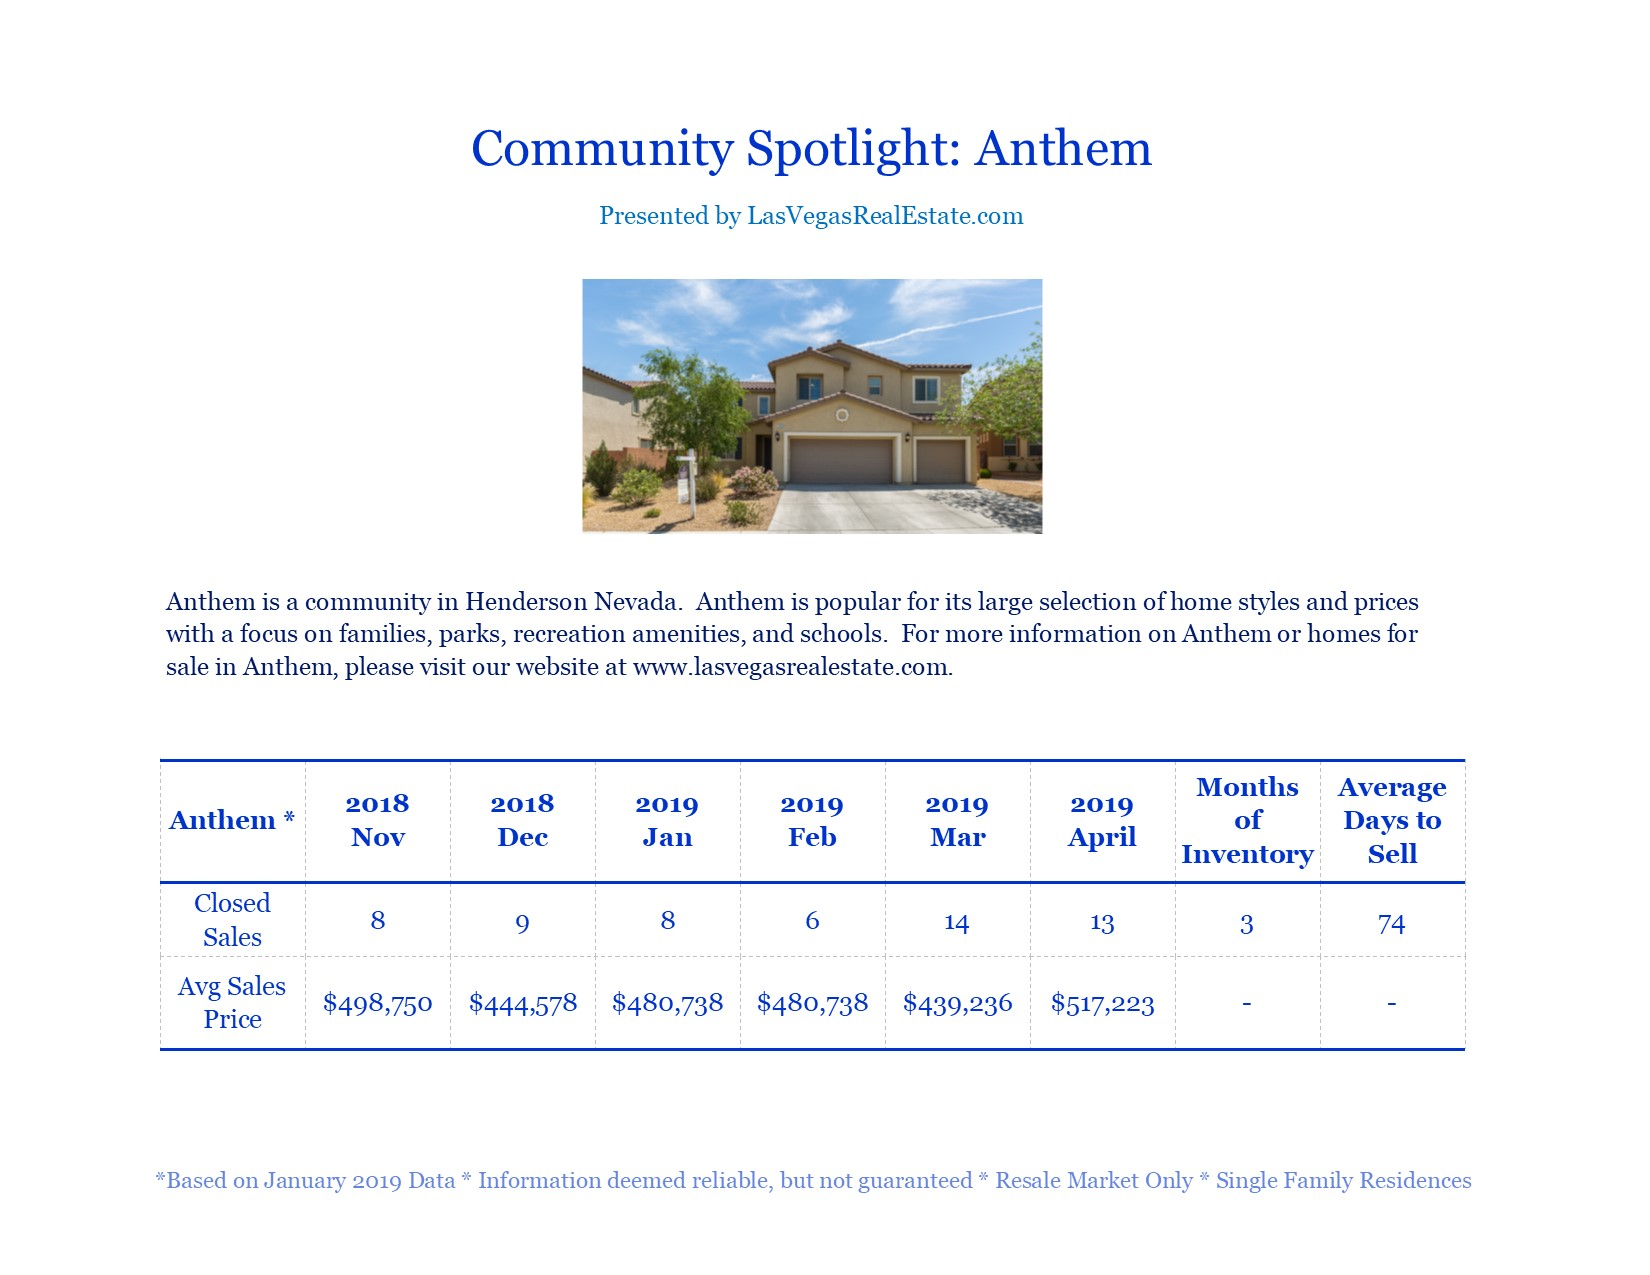 Community Spotlight - Anthem - LasVegasRealEstate.com